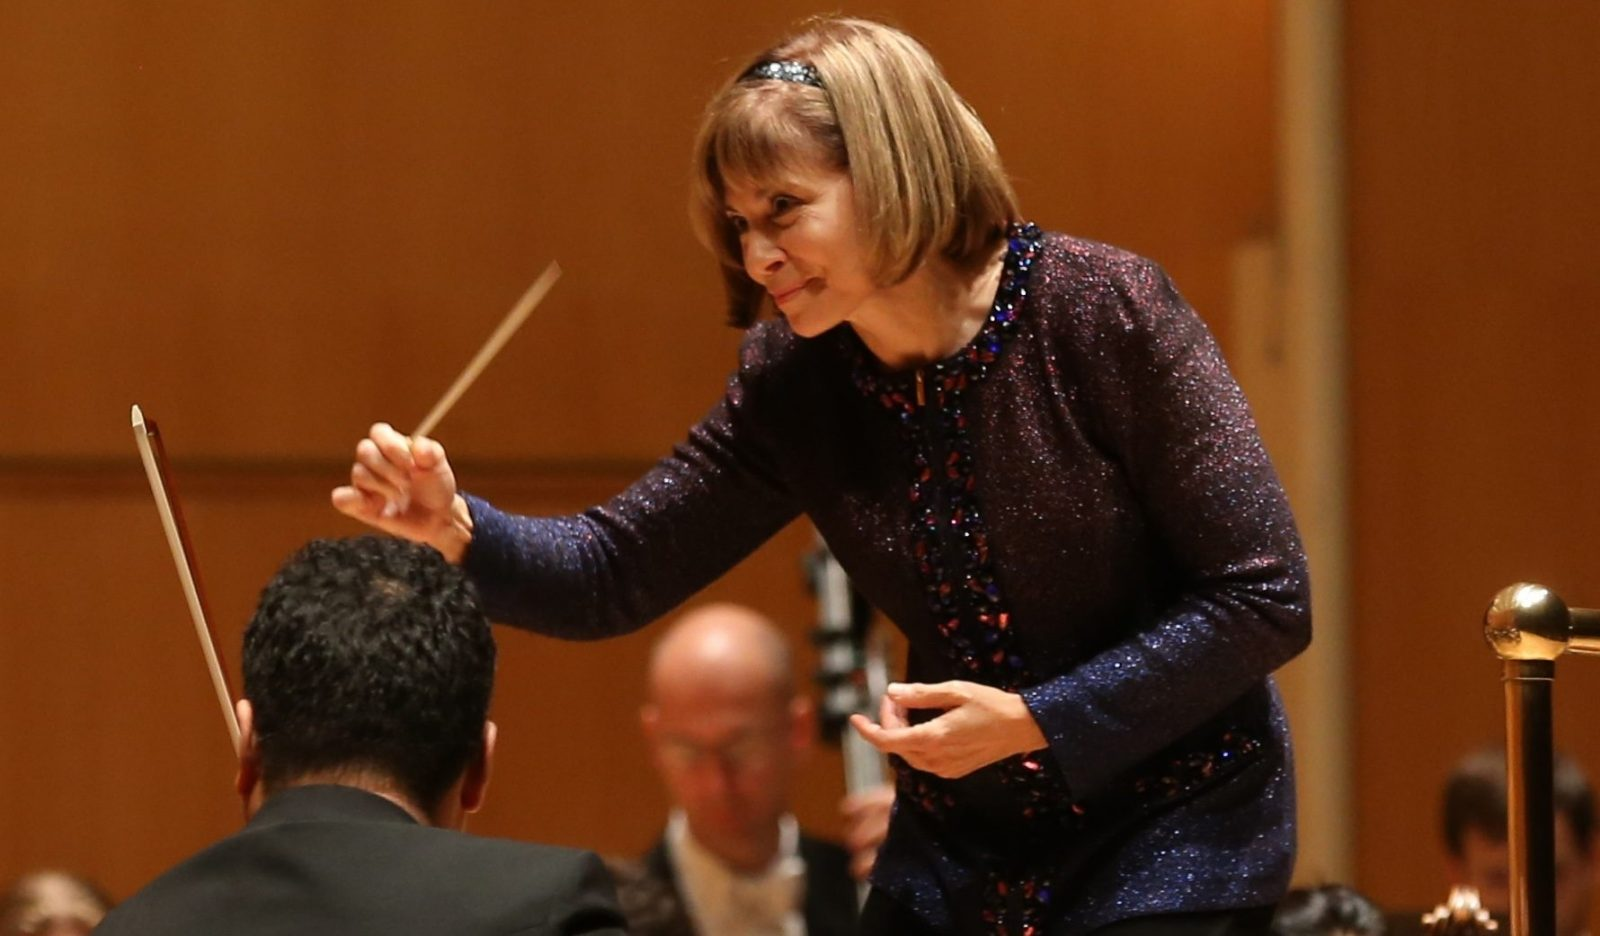 JoAnn Falletta, music director of the BPO since 1999. (Sharon Cantillon/Buffalo News file photo)